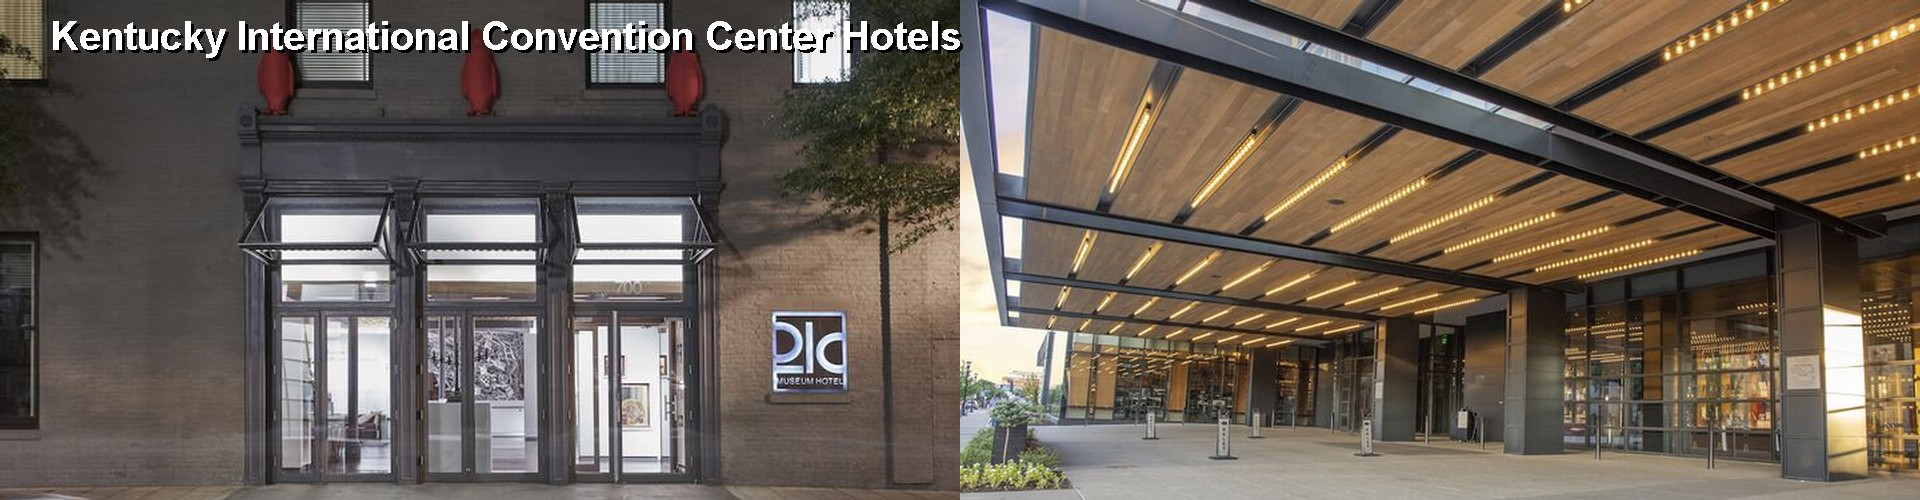 5 Best Hotels near Kentucky International Convention Center